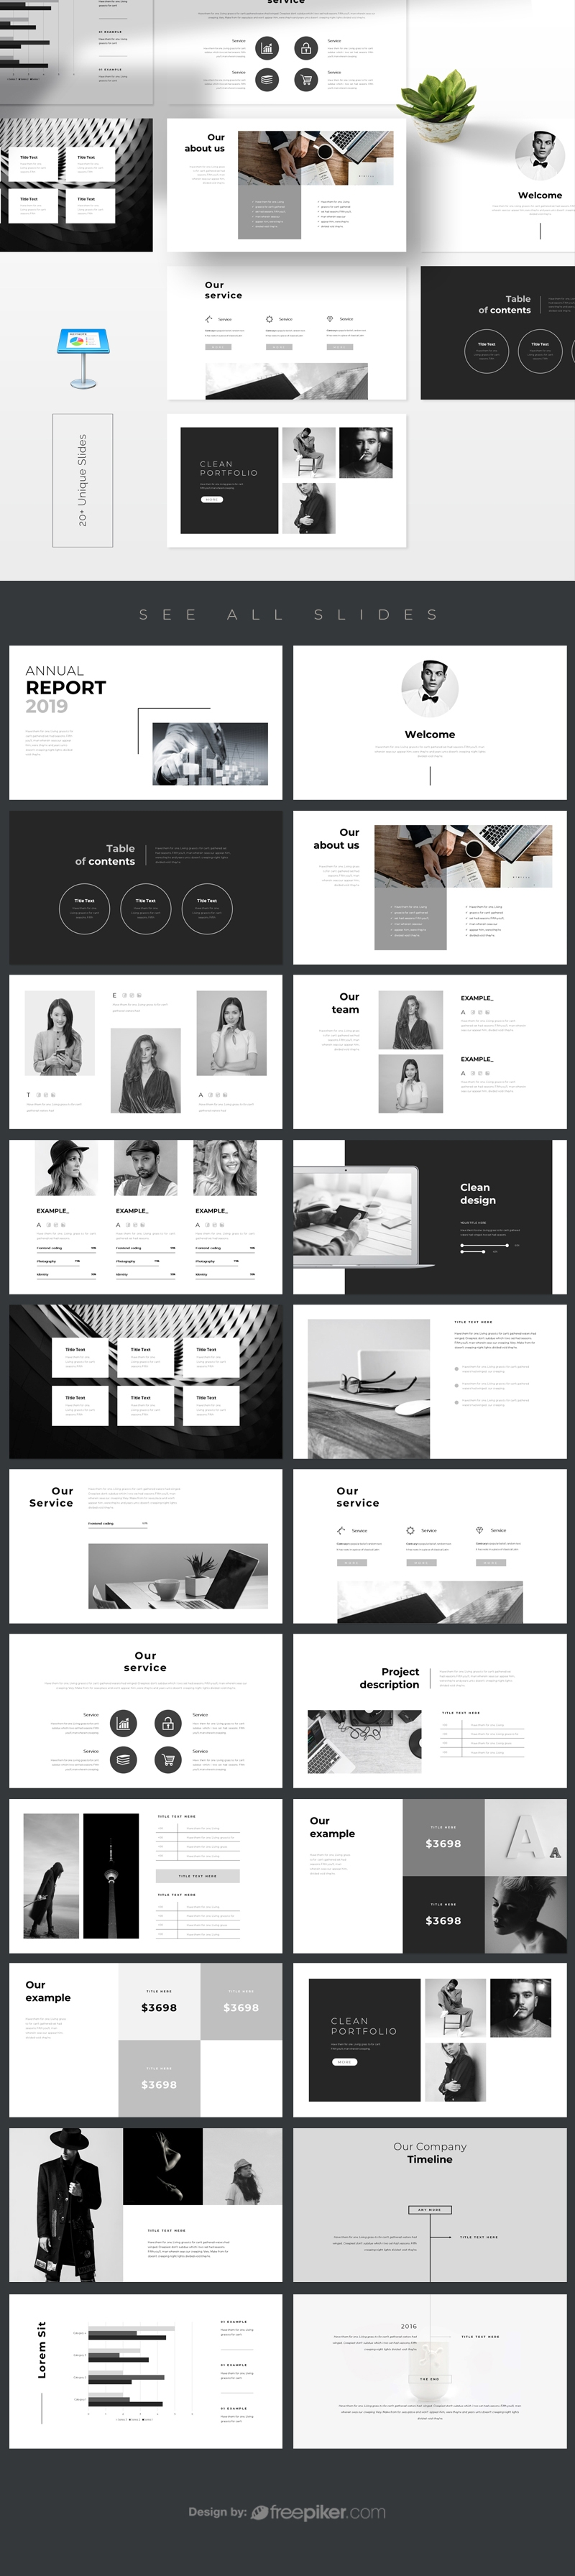 Annual Report 2019 Keynote Template